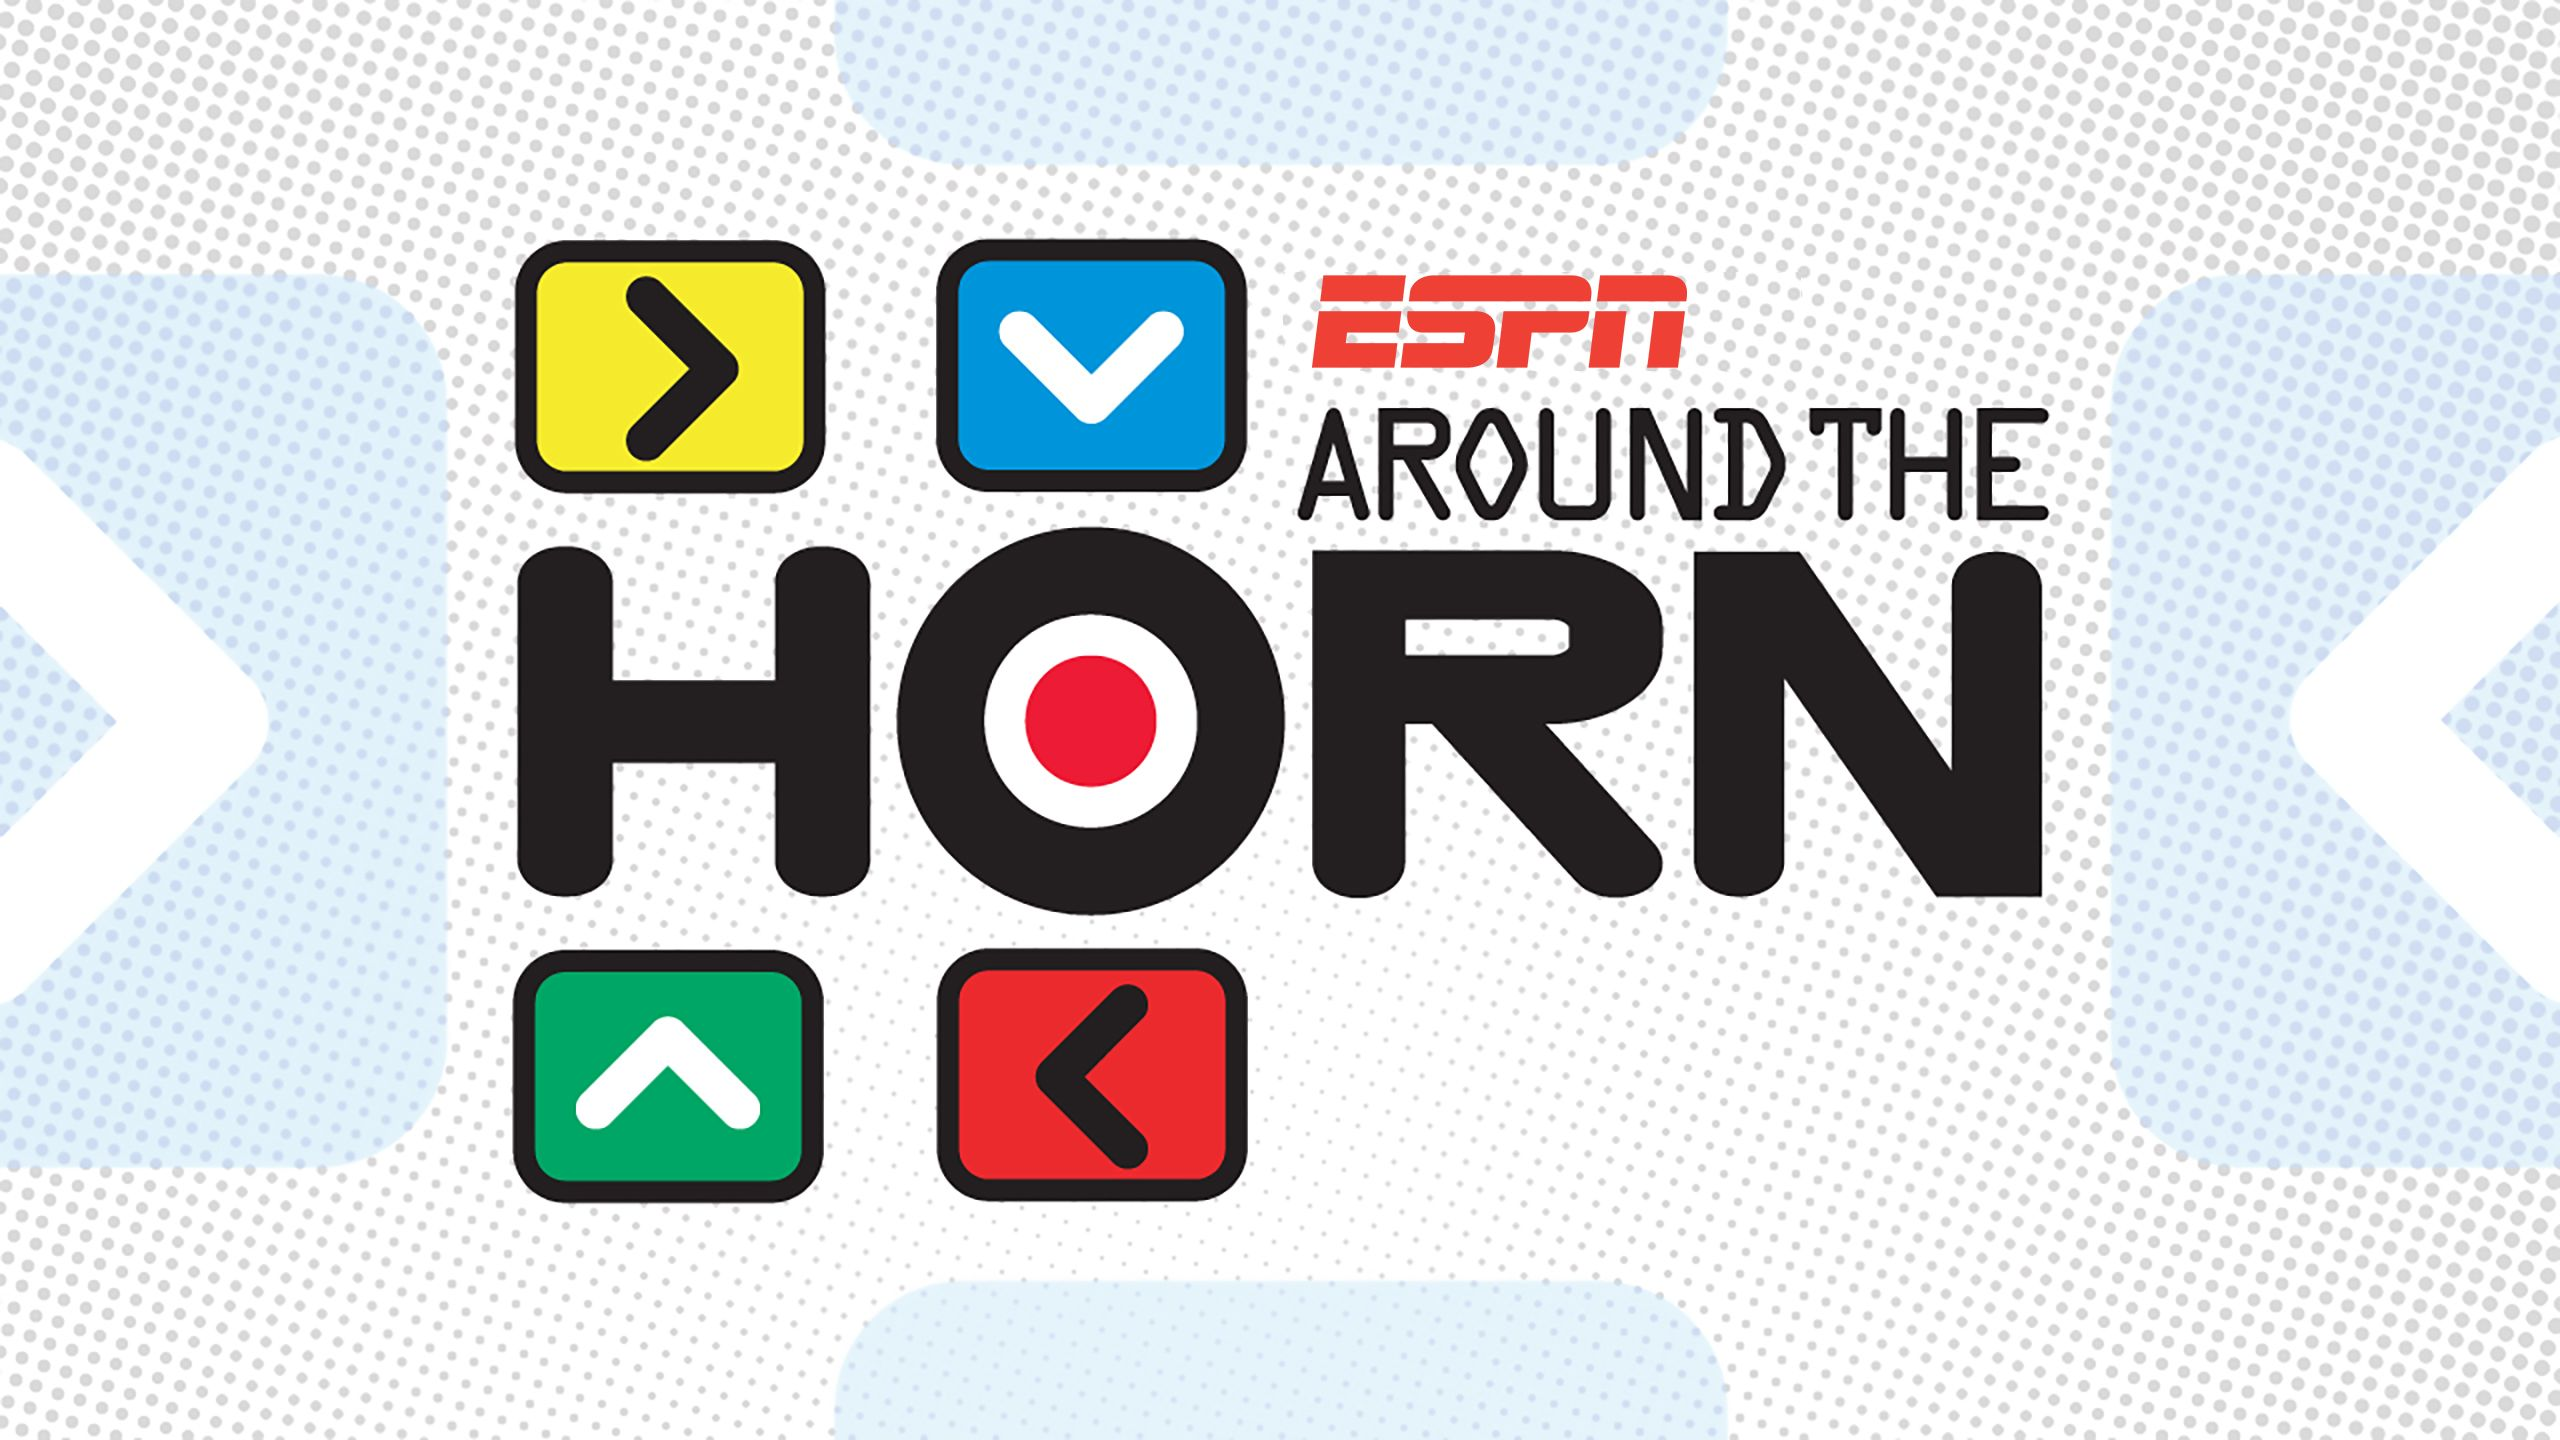 Fri, 5/25 - Around The Horn